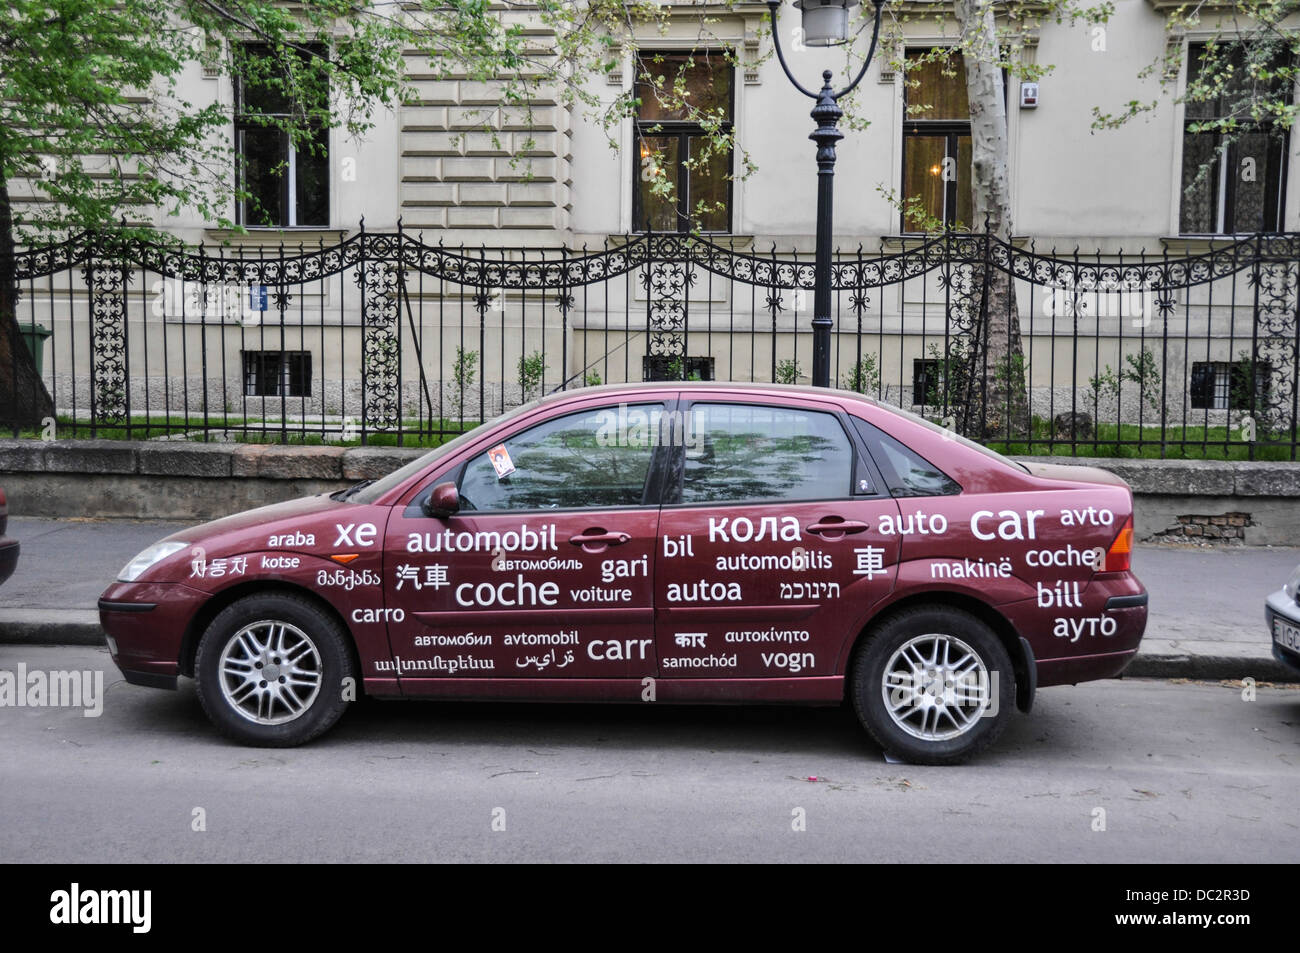 Multilingual Car. A car with 'CAR' written on it in many languages. Photographed in Budapest, Hungary - Stock Image